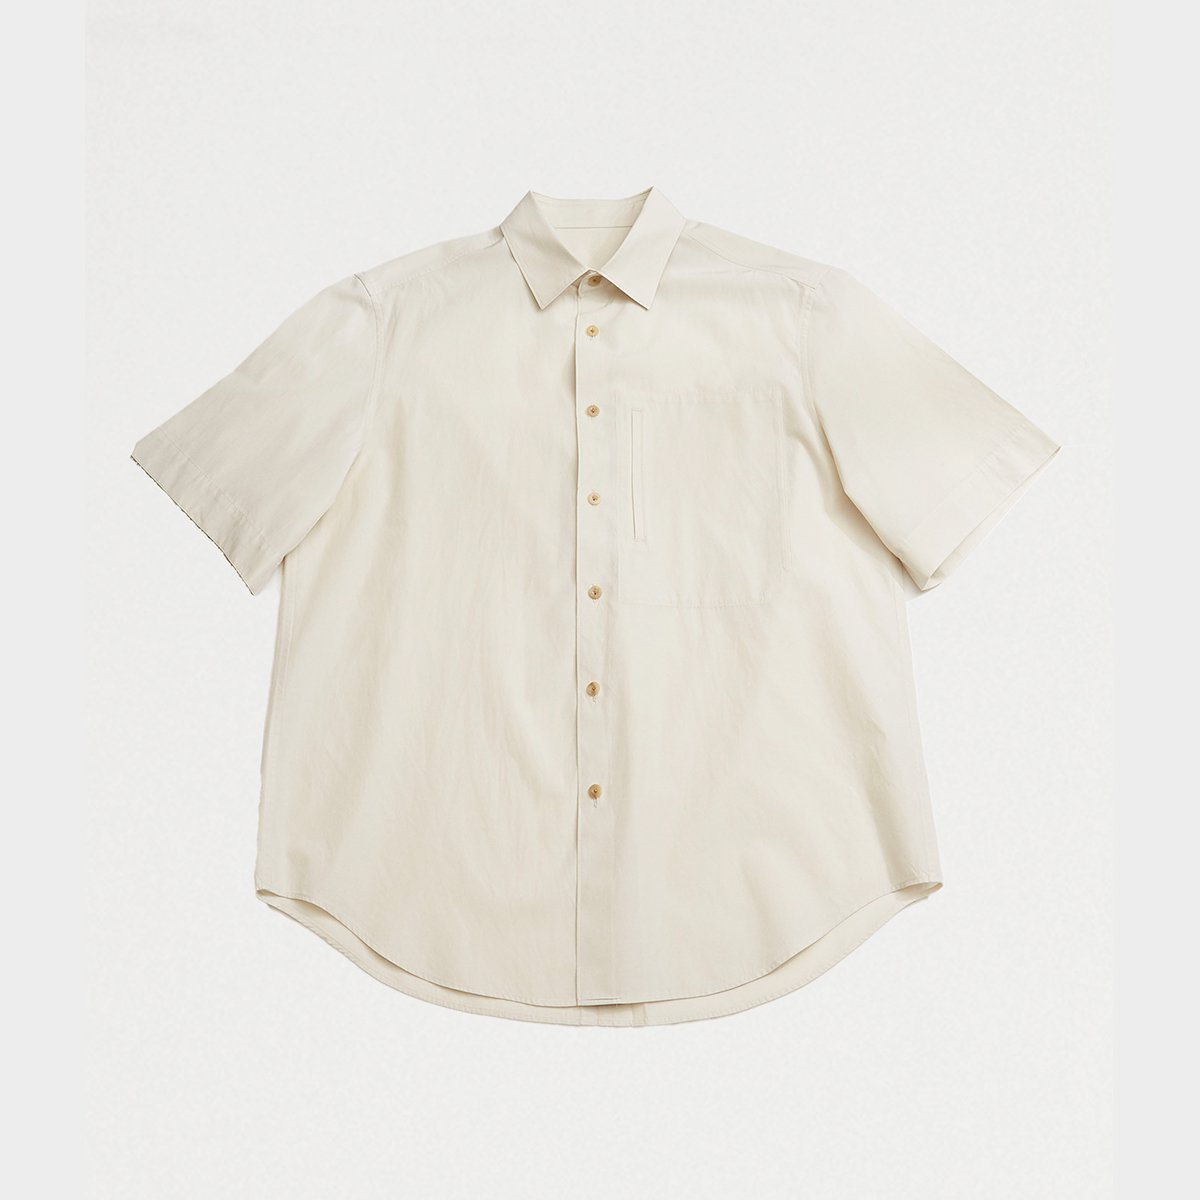 <img class='new_mark_img1' src='https://img.shop-pro.jp/img/new/icons5.gif' style='border:none;display:inline;margin:0px;padding:0px;width:auto;' />CLASSIC SHORT-SLEEVED SHIRT / IVORY GRAY